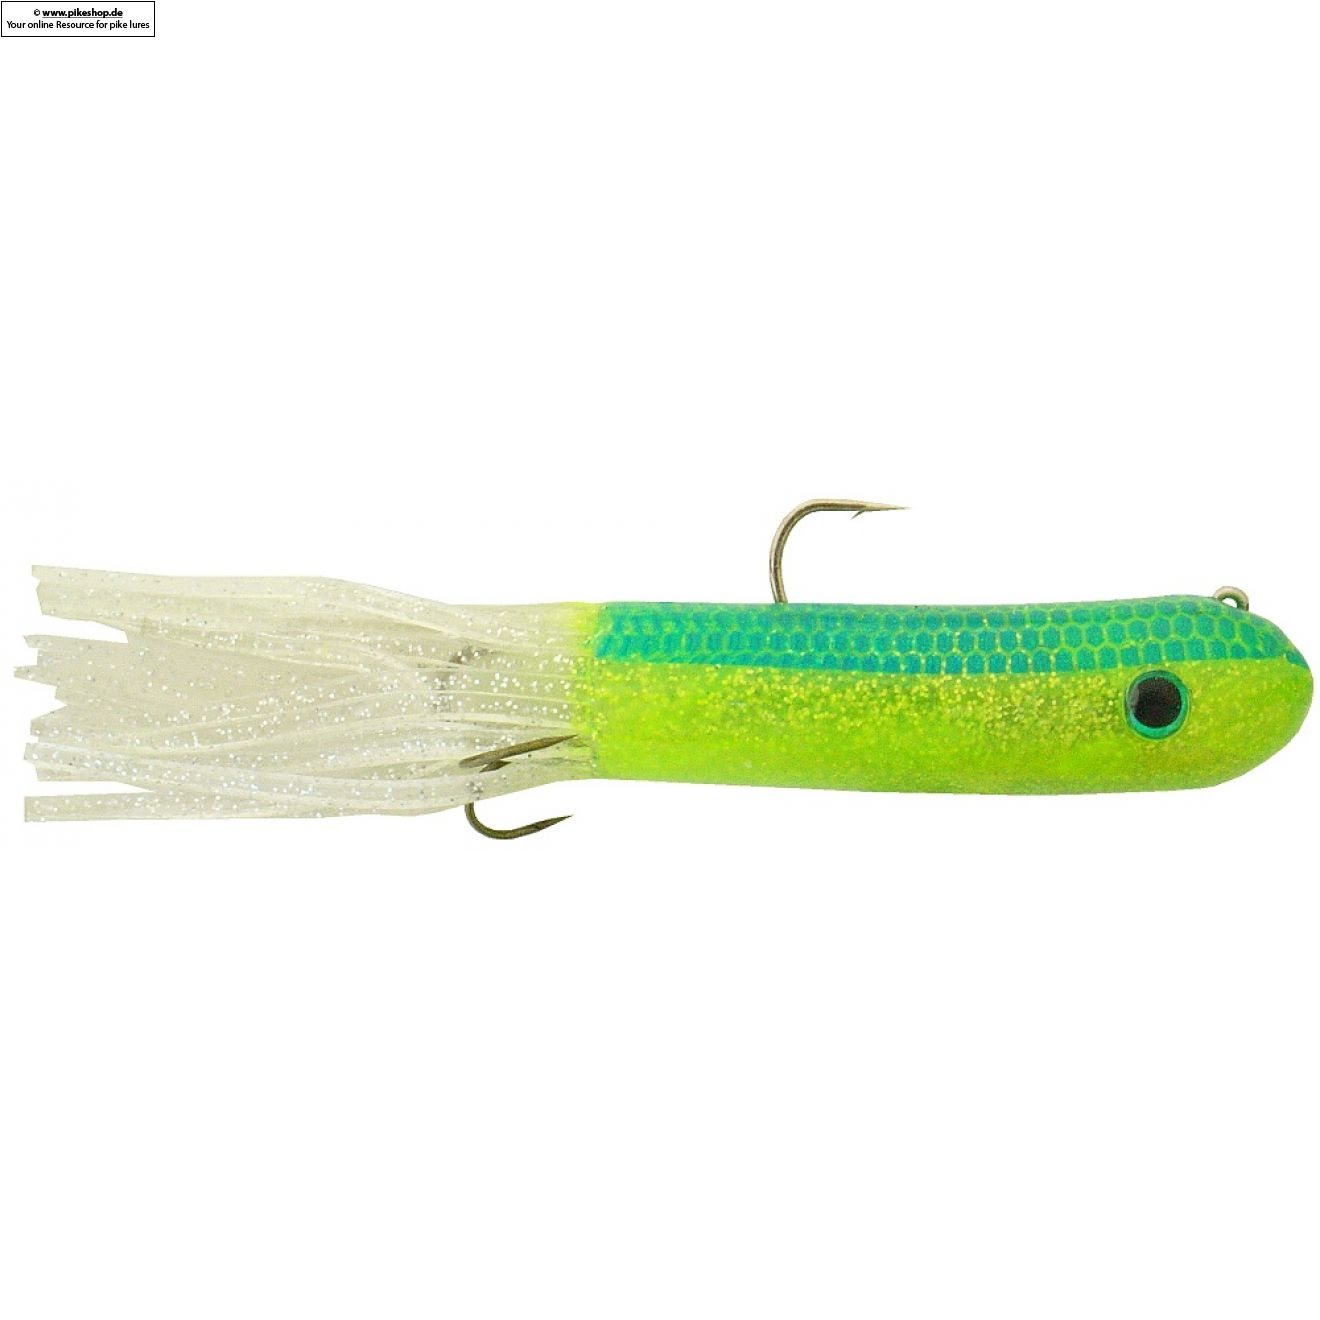 Tube JR - 20cm (8 Zoll) - RS Chartreuse Shiner